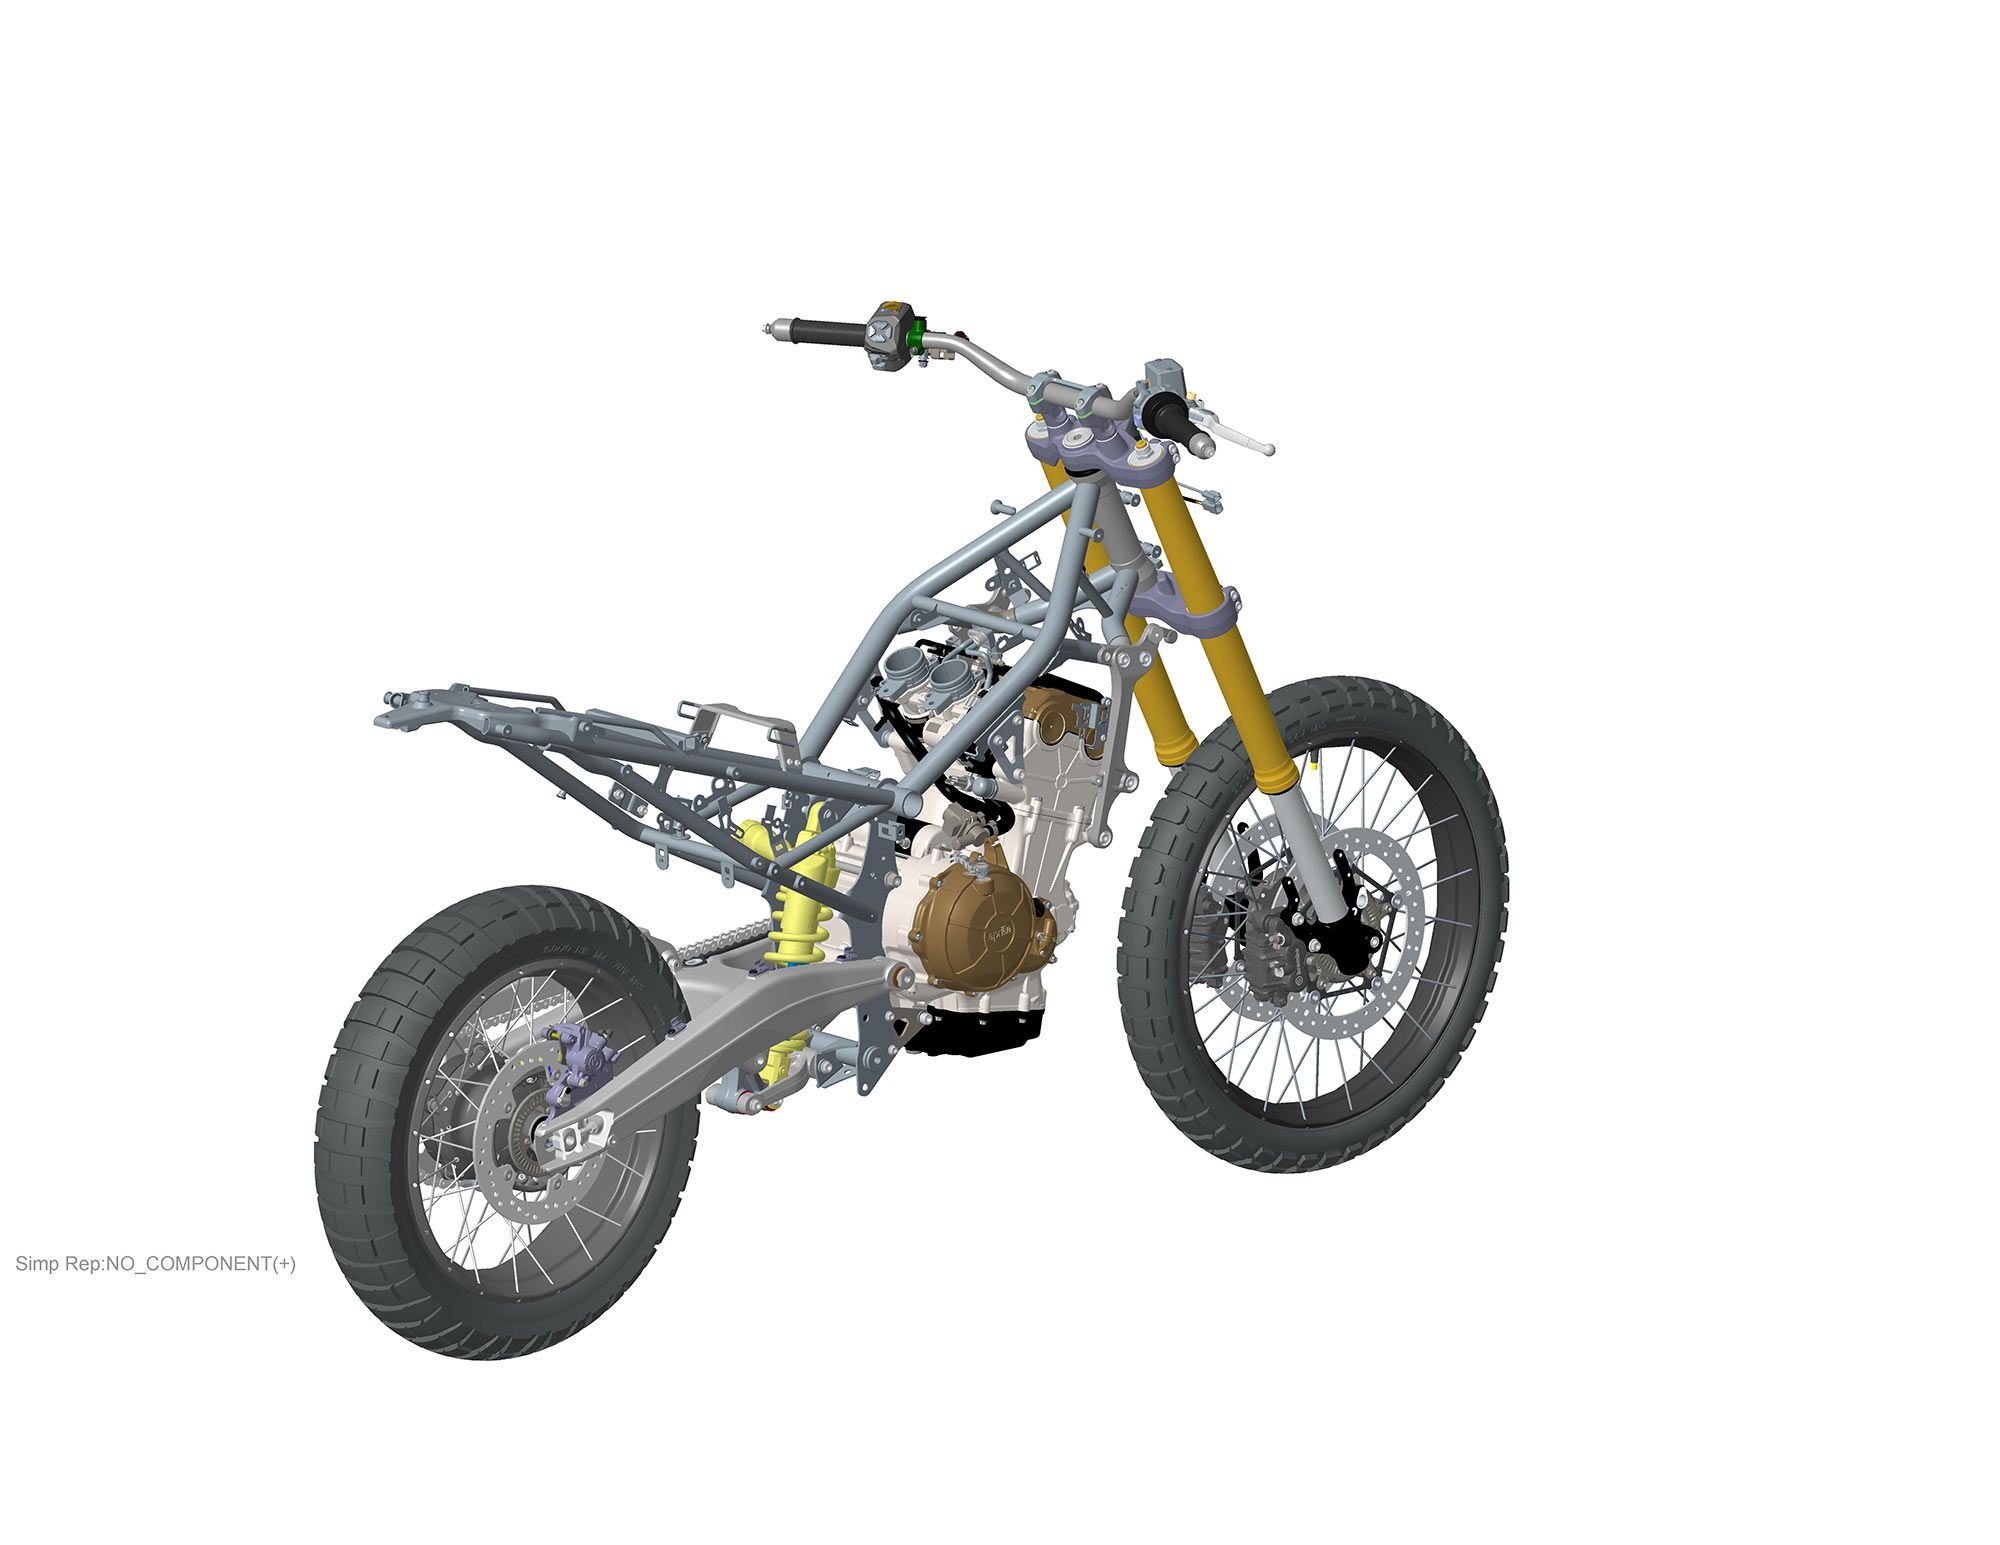 A steel frame holds the Tuareg's engine with six mounting points.